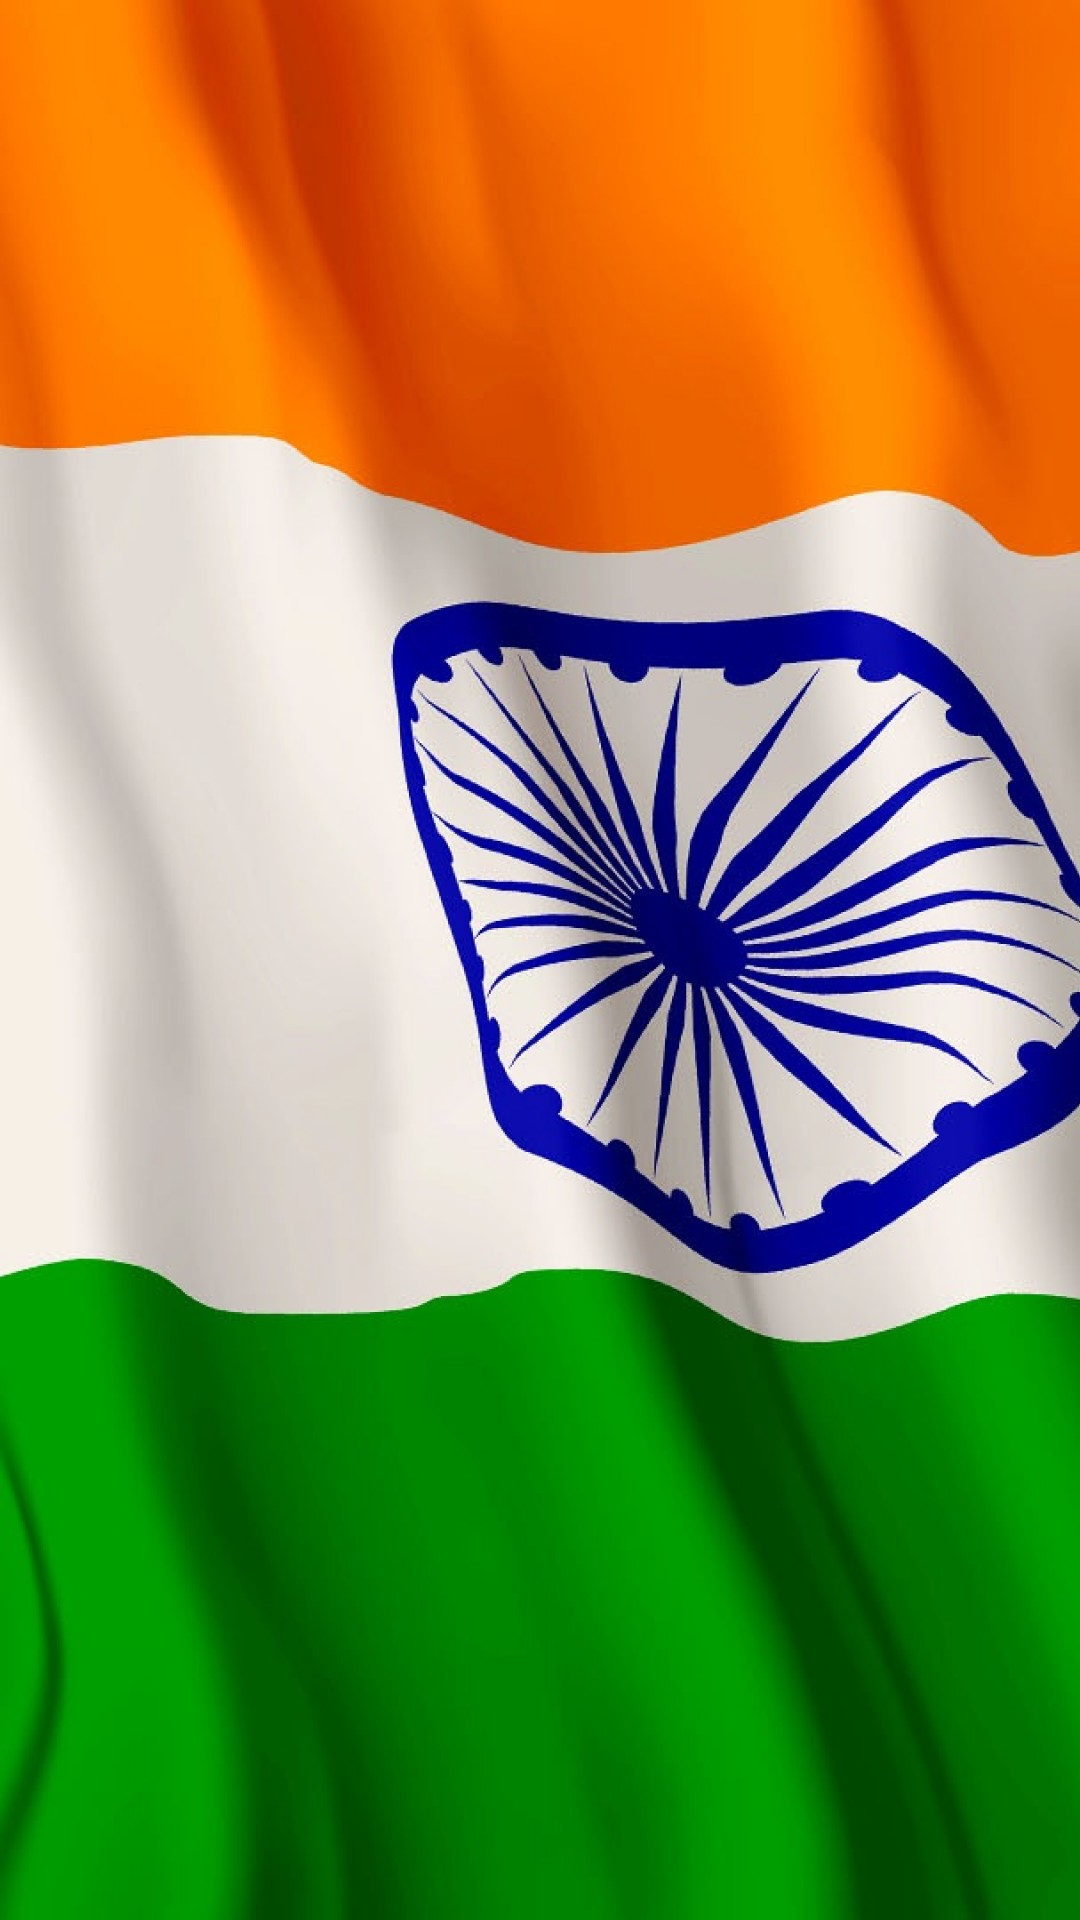 free download indian flag wallpaper for desktop and mobiles iphone 6